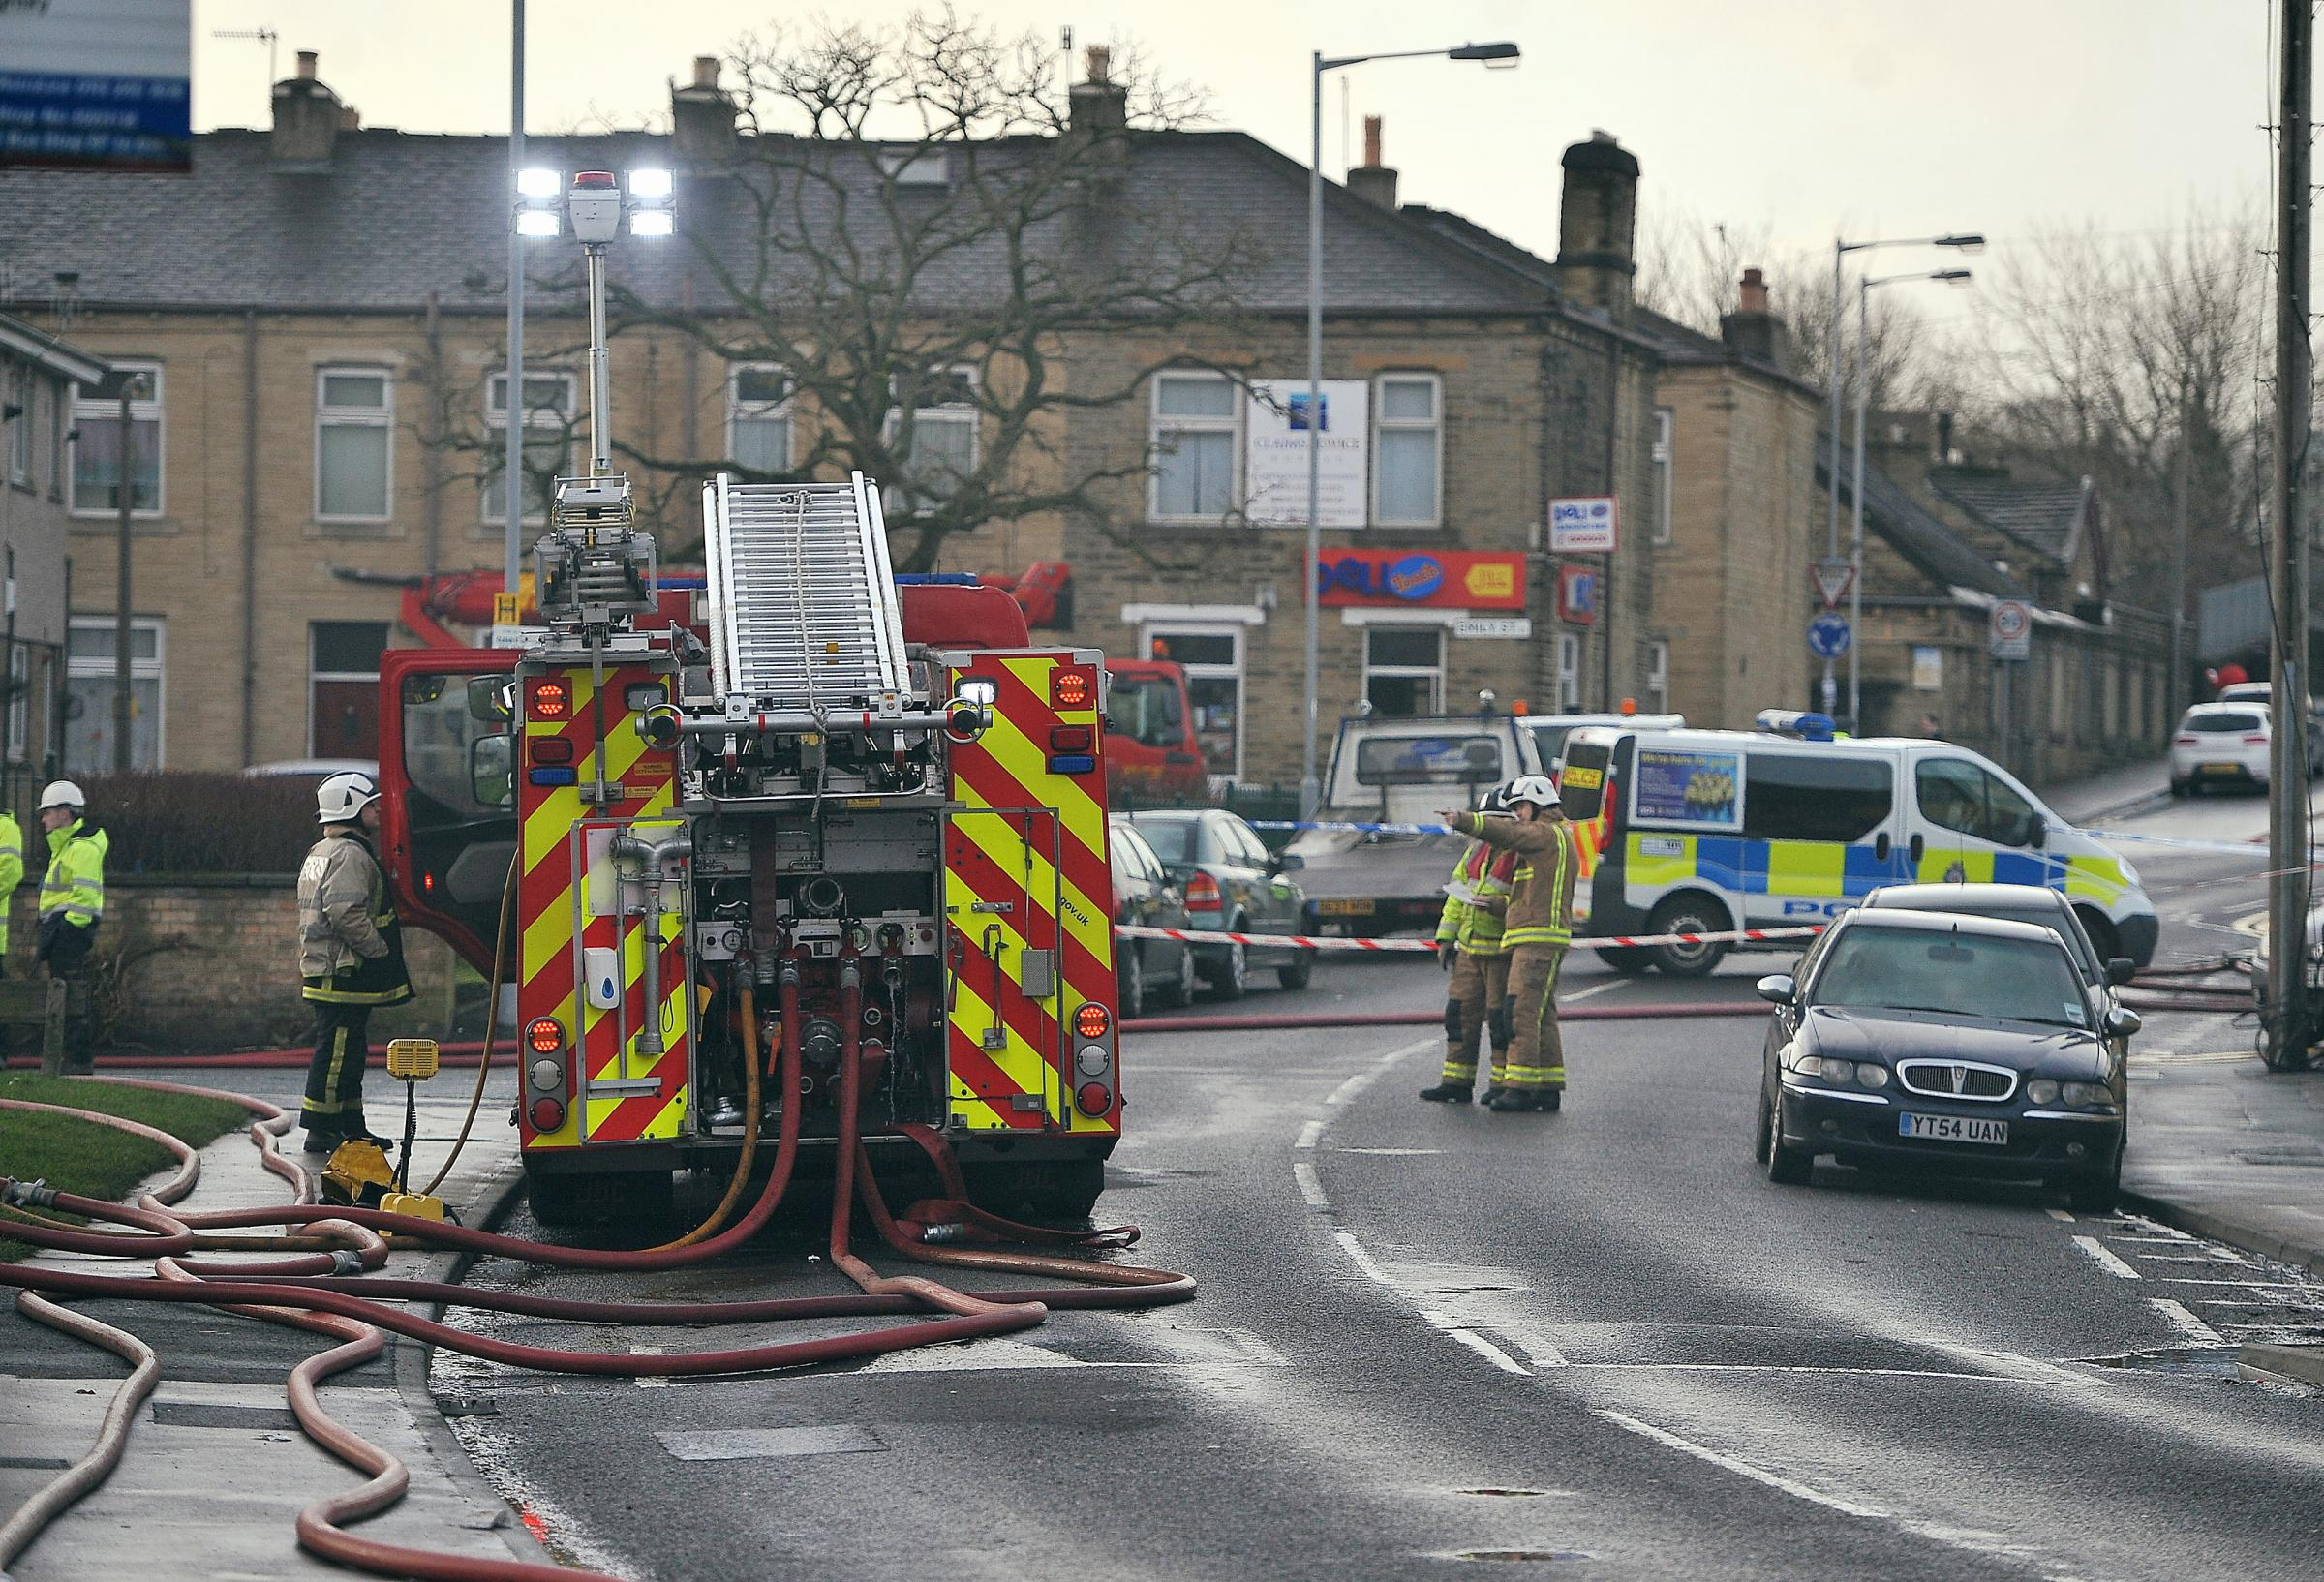 Third of violent attacks on West Yorkshire firefighters happen in Bradford as crews targeted 76 times